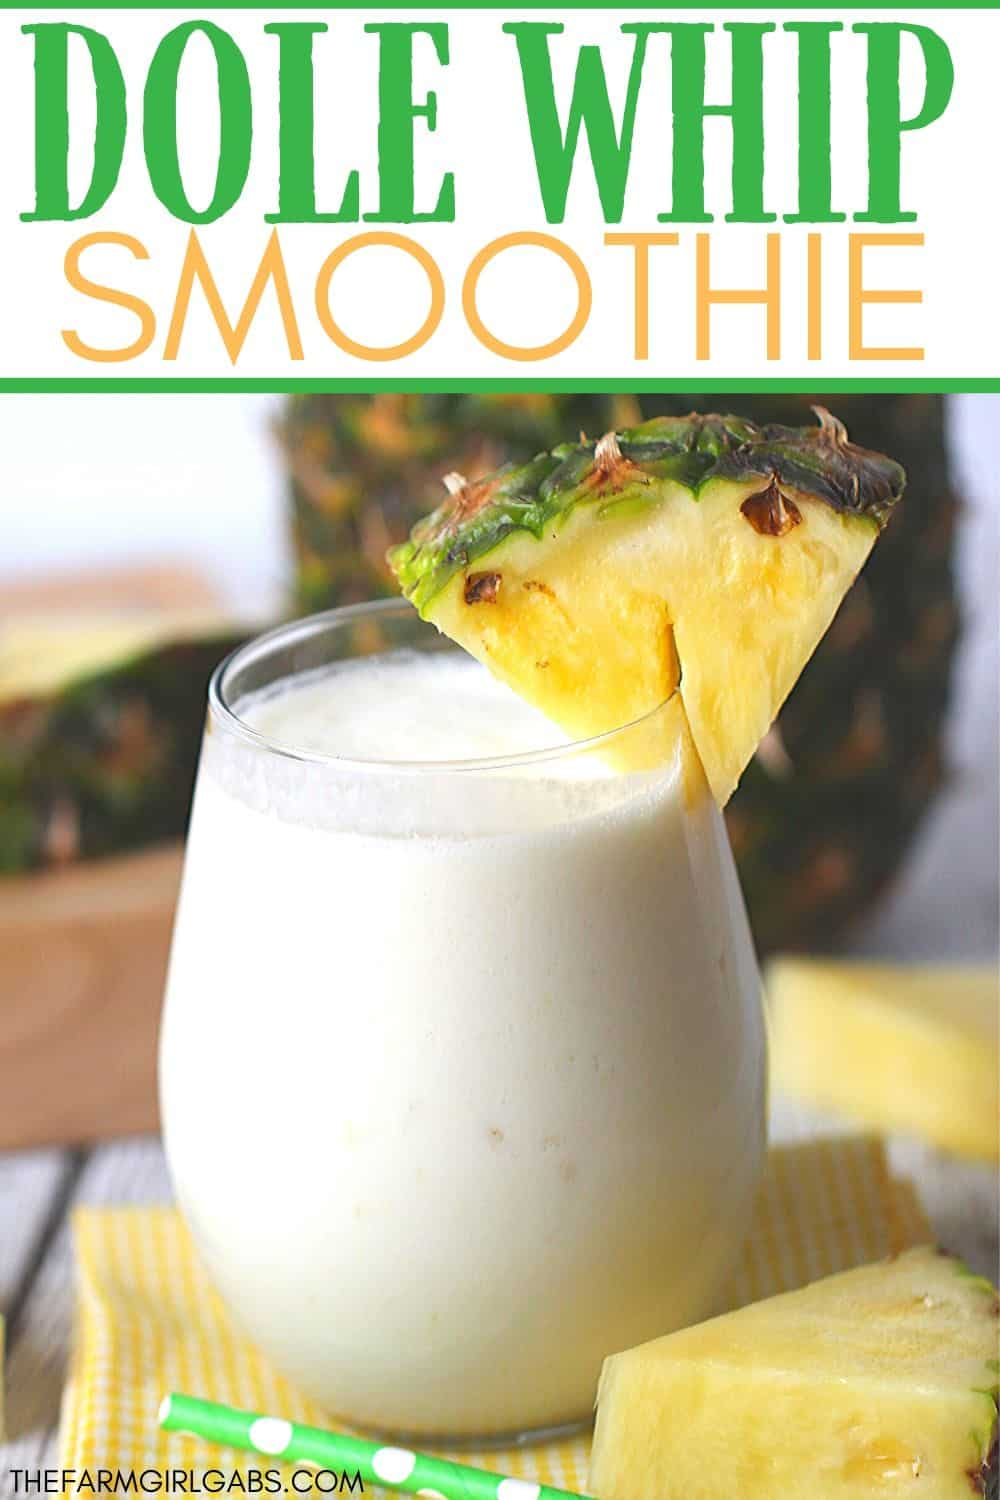 This Dole Whip Smoothie recipe is inspired by my favorite Walt Disney World Treat. This easy smoothie recipe is full of pineapple flavor and is perfect for breakfast, lunch or a snack. This Dole Whip recipe is the next best thing to visiting Disney World. #dolewhiprecipe #disneyfood #disneysnack #disneyrecipe #breakfastsmoothie #dolewhip